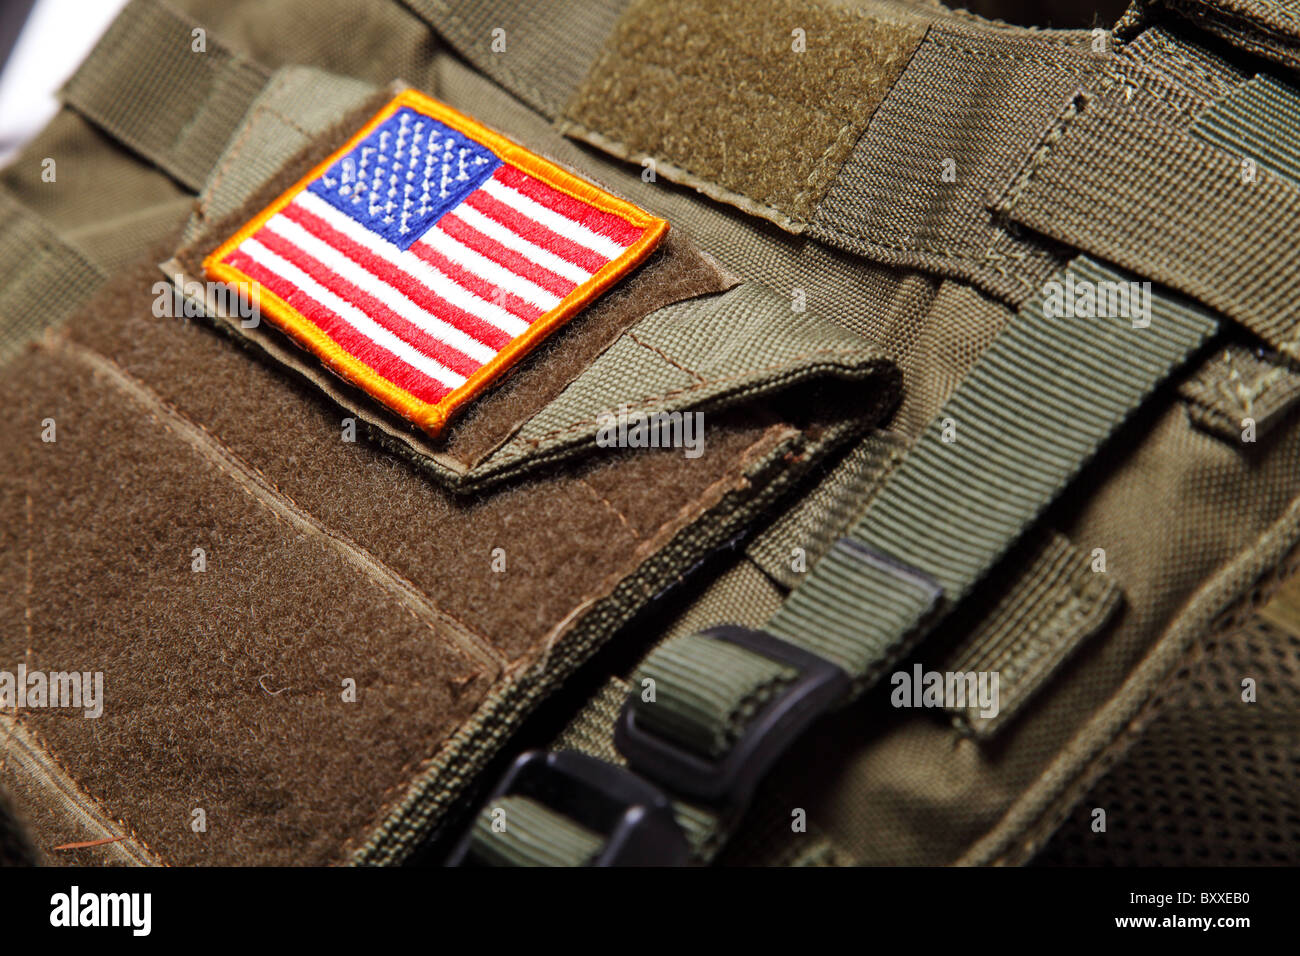 American flag on a green (olive drab) tactical vest. Close-up. - Stock Image